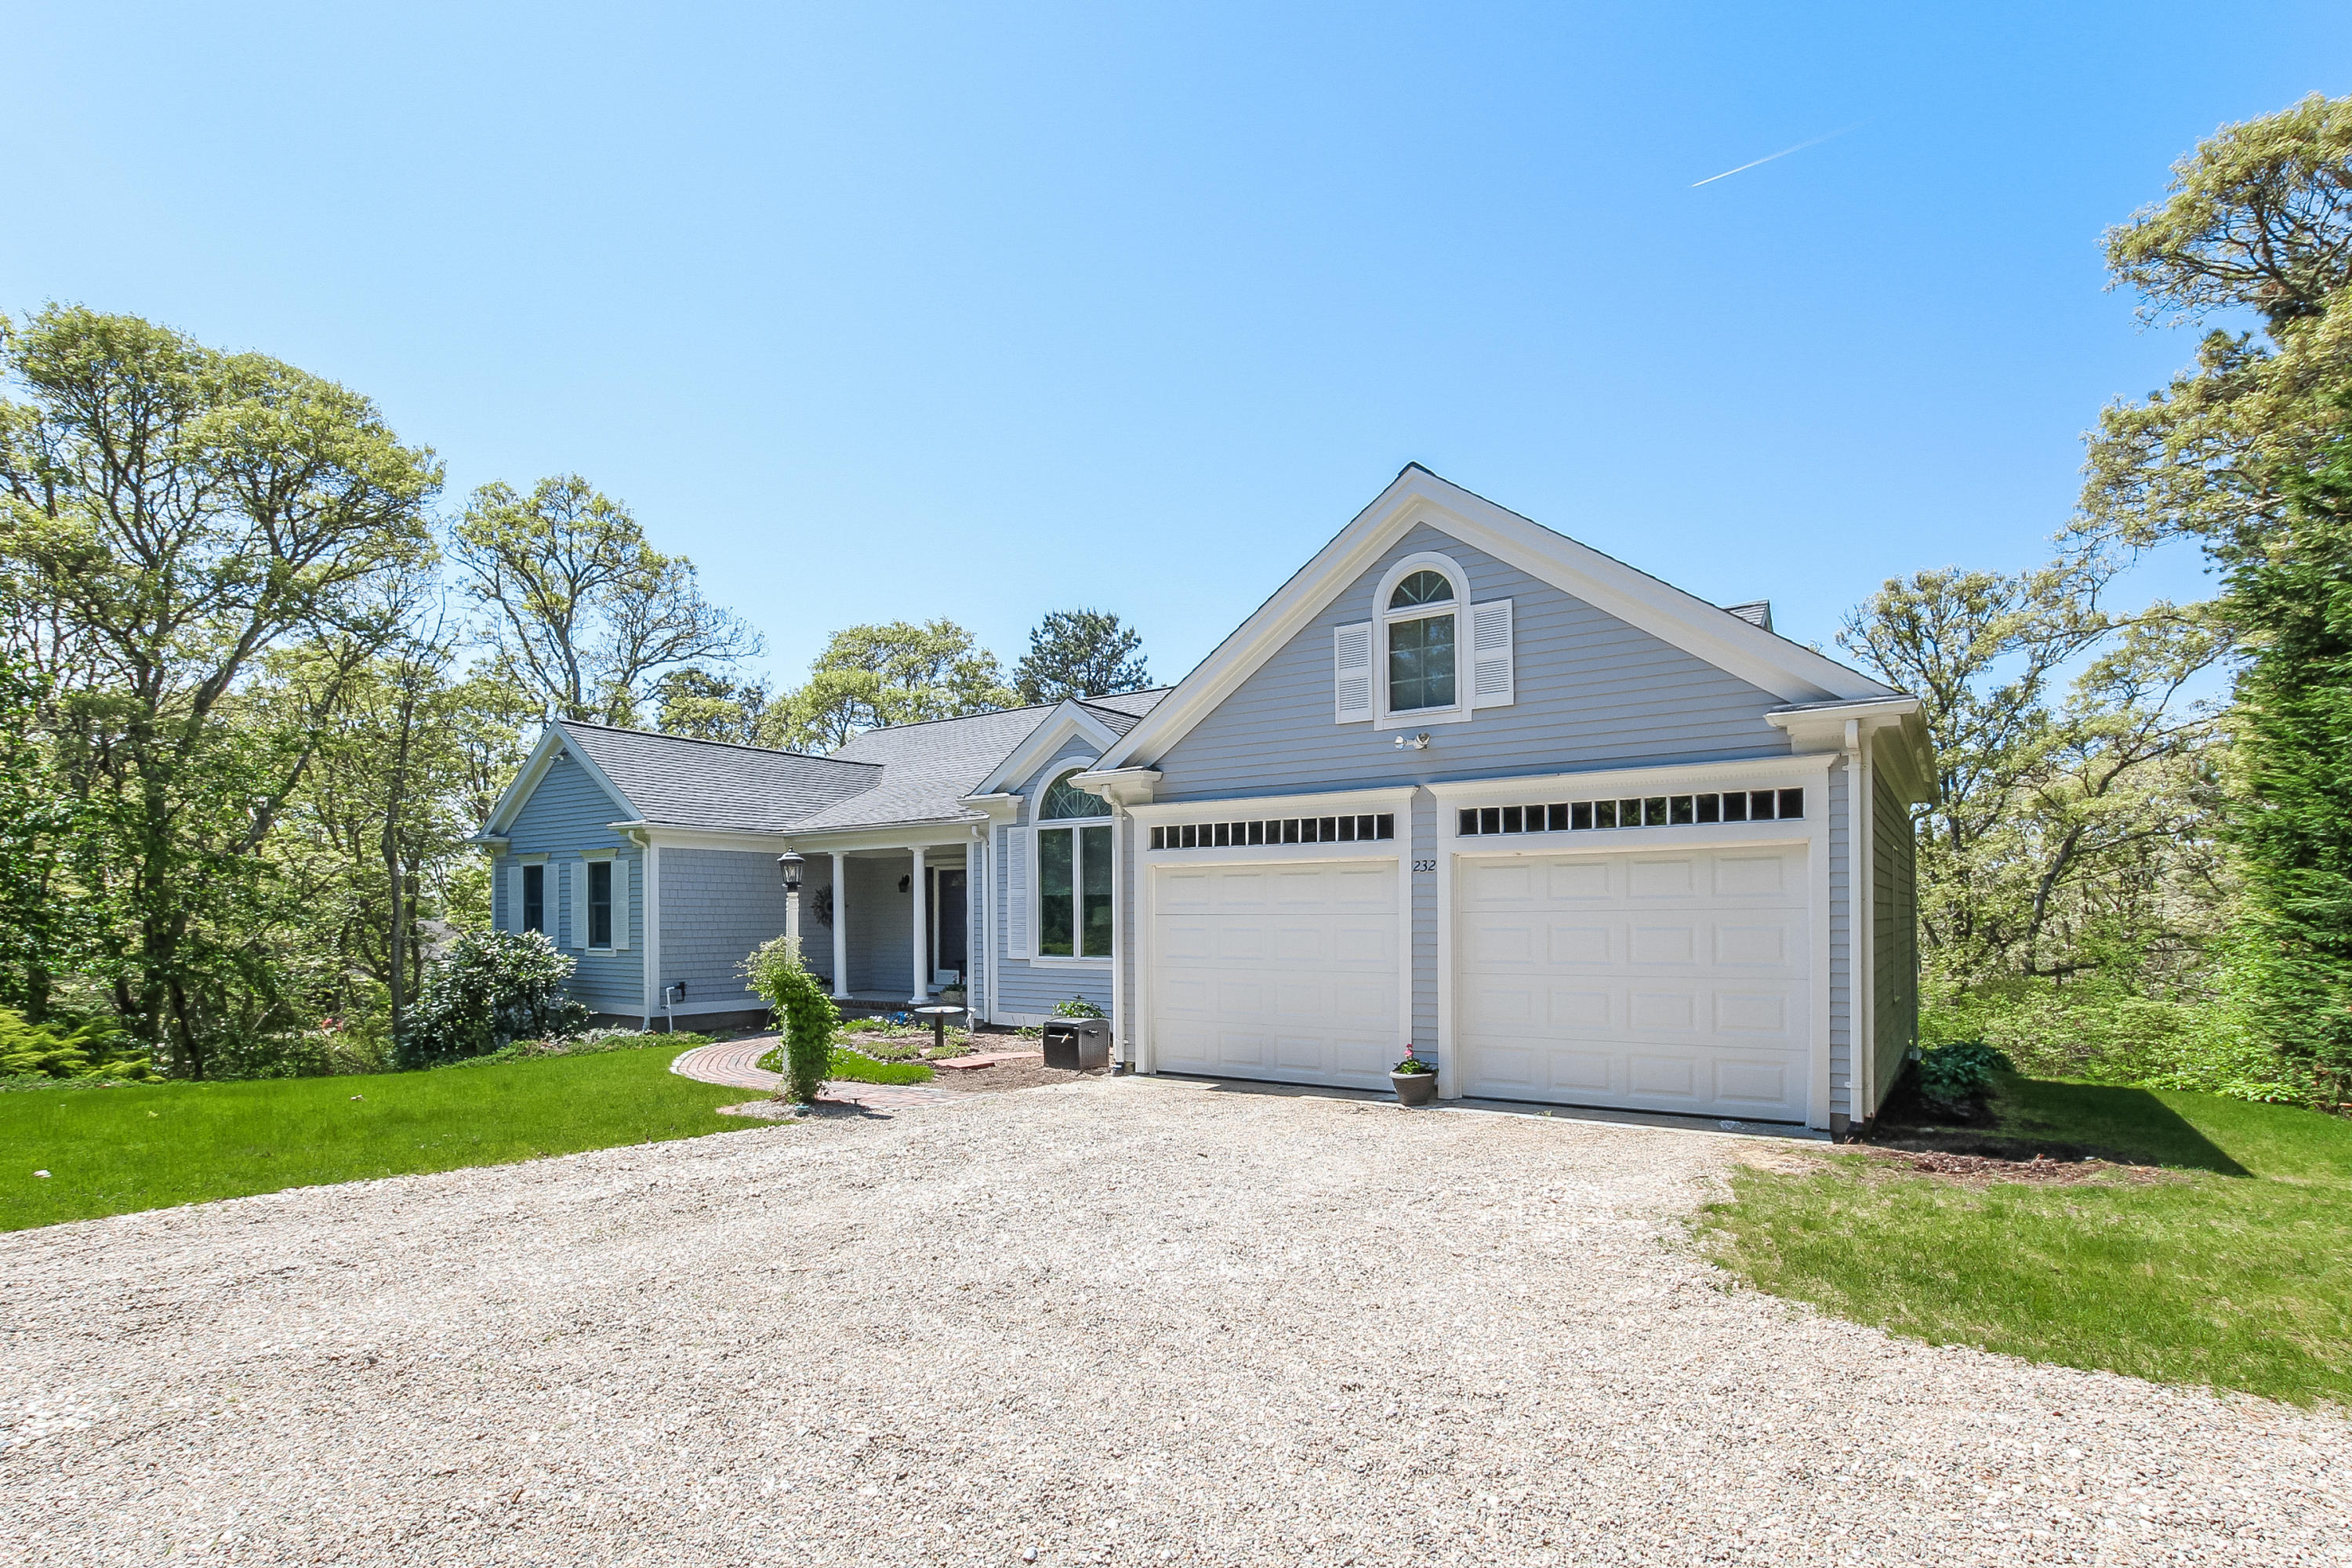 232-griffiths-pond-road-brewster-ma-02631